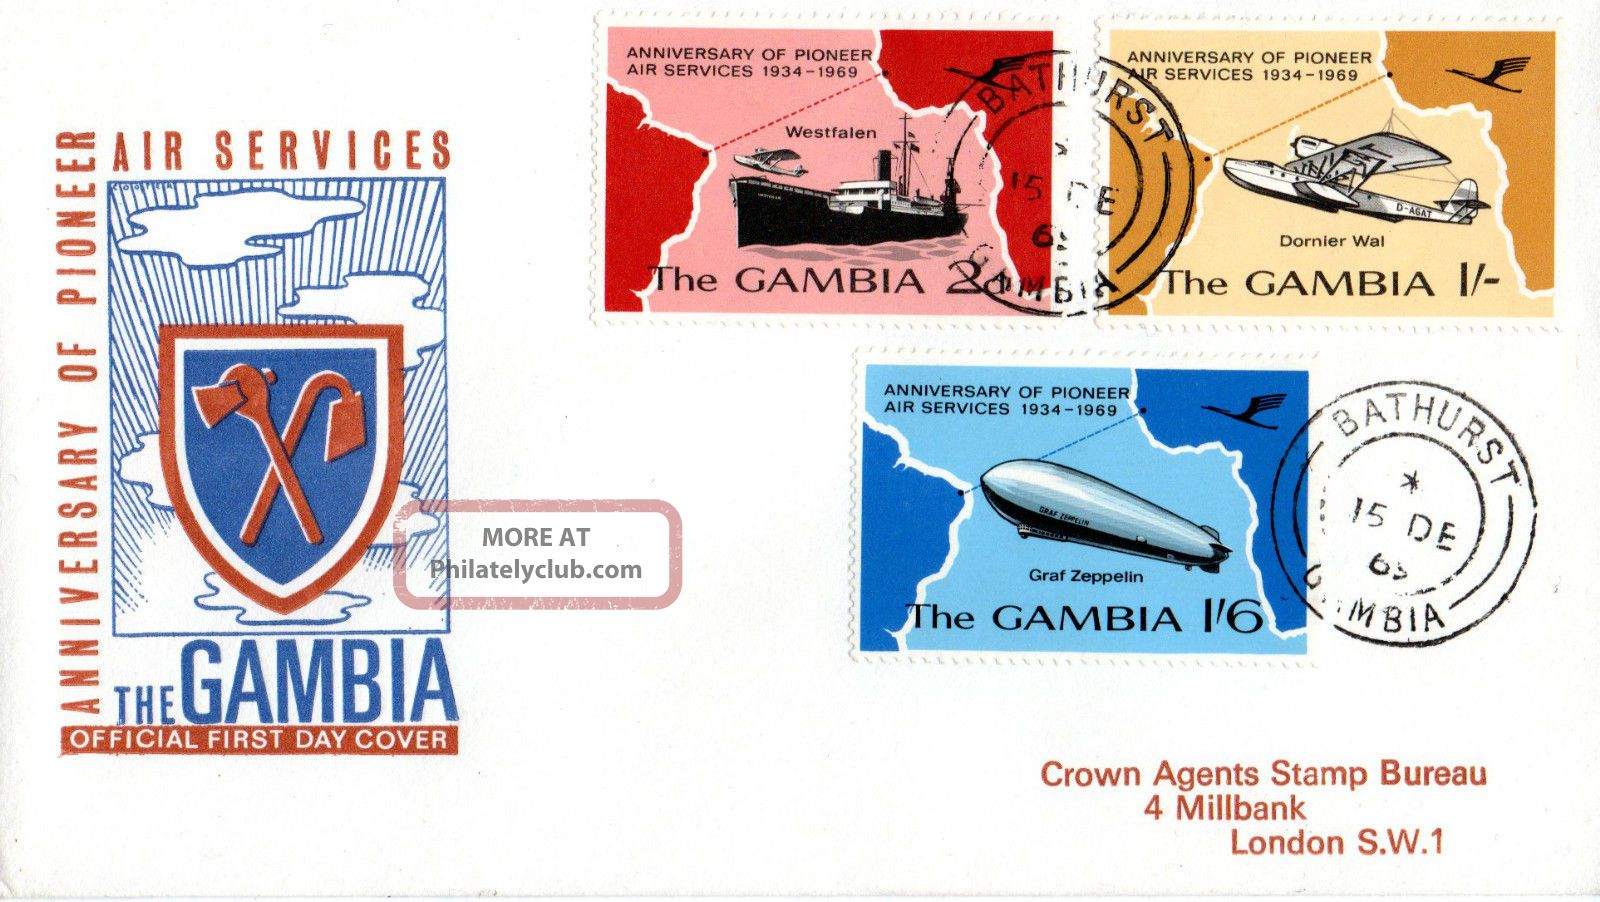 Gambia 15 December 1969 Pioneer Air Services First Day Cover Bathurst Cds Africa photo